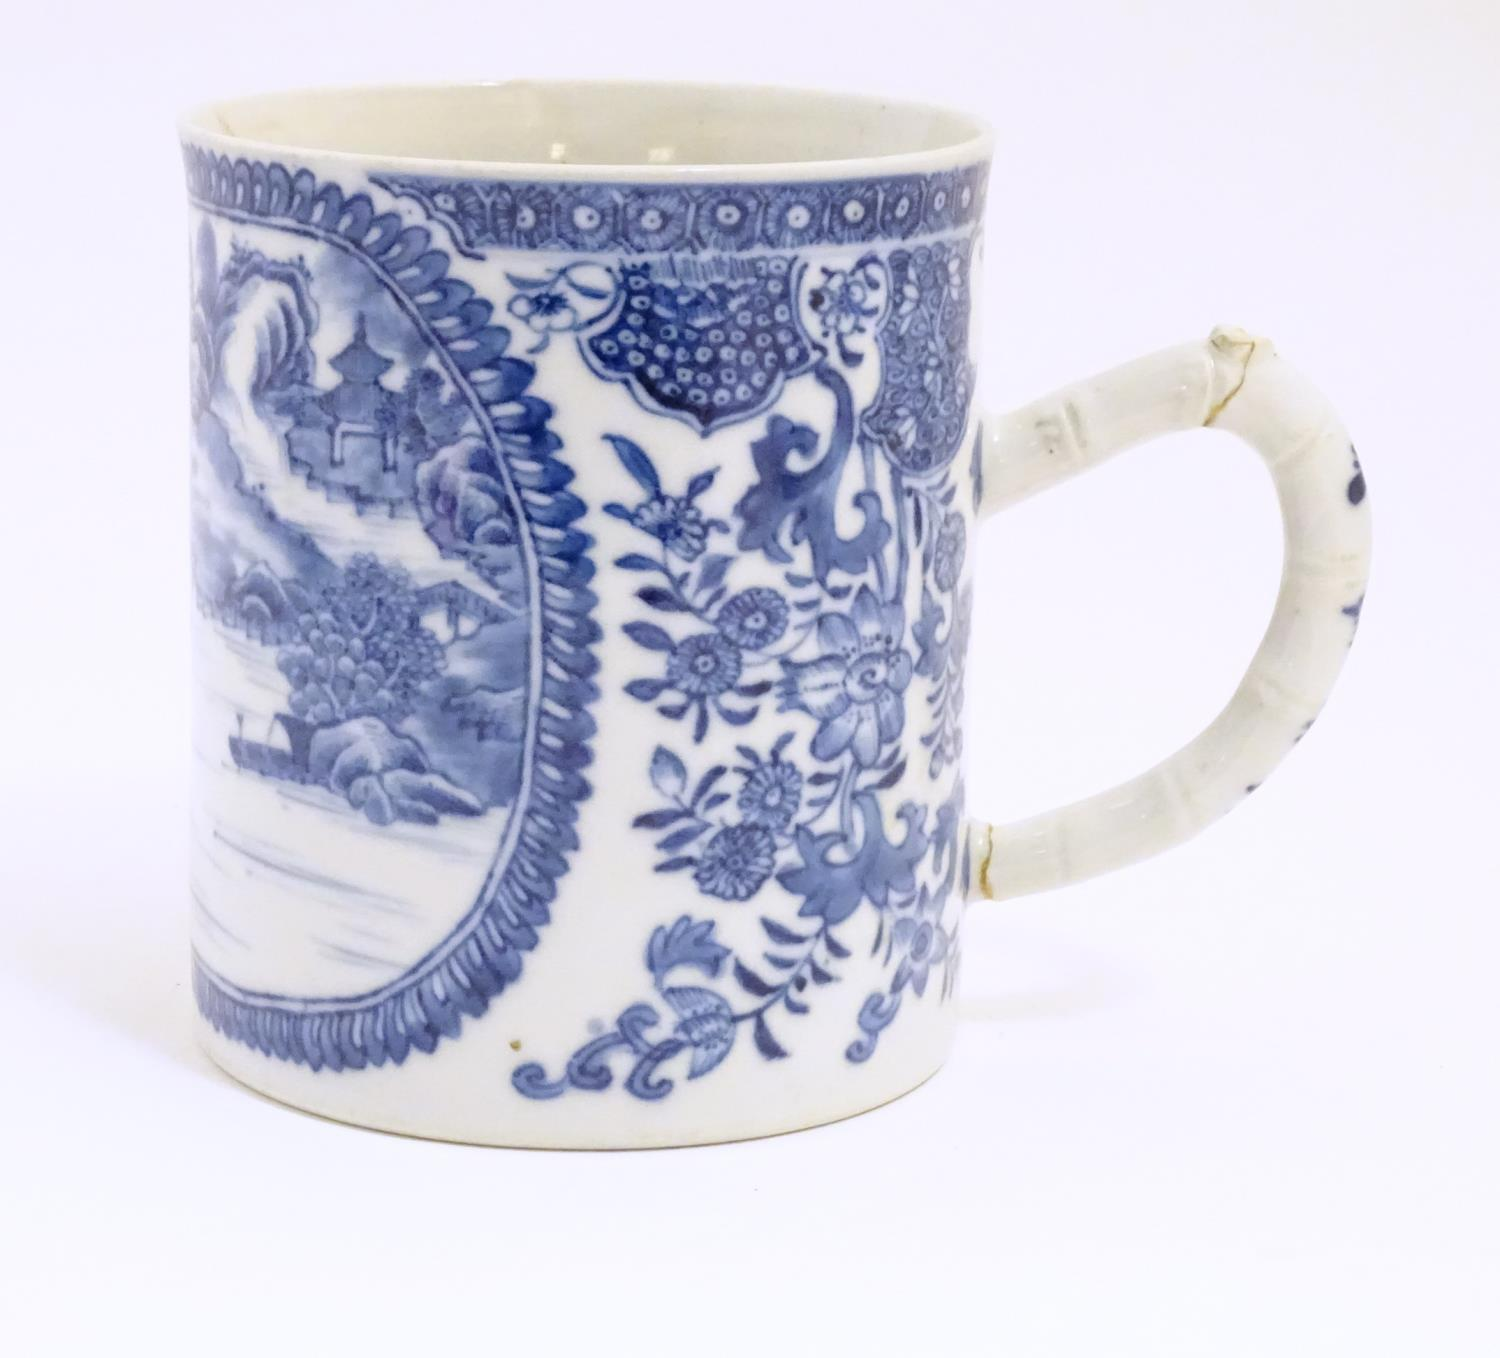 A Chinese blue and white export mug depicting a landscape scene with pagodas, with floral and - Image 4 of 6